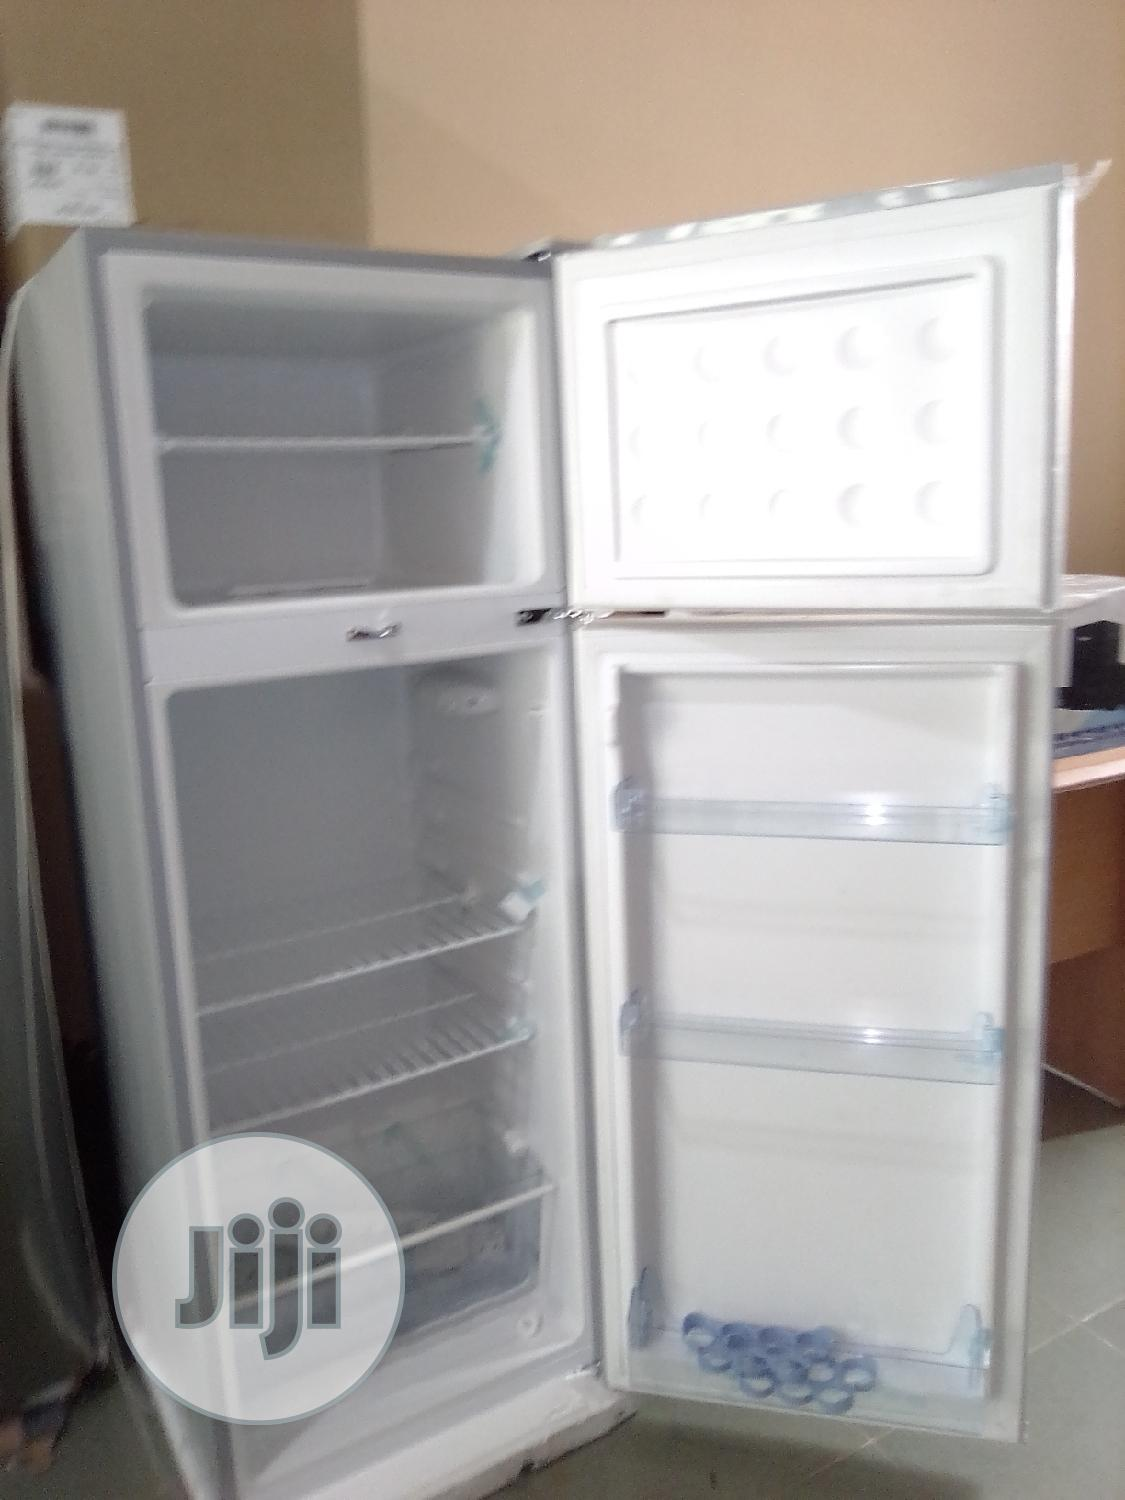 BRUHM-REFRIGERATOR 225 LITERS /Double Door/Silver-brd-225-dd | Kitchen Appliances for sale in Central Business Dis, Abuja (FCT) State, Nigeria